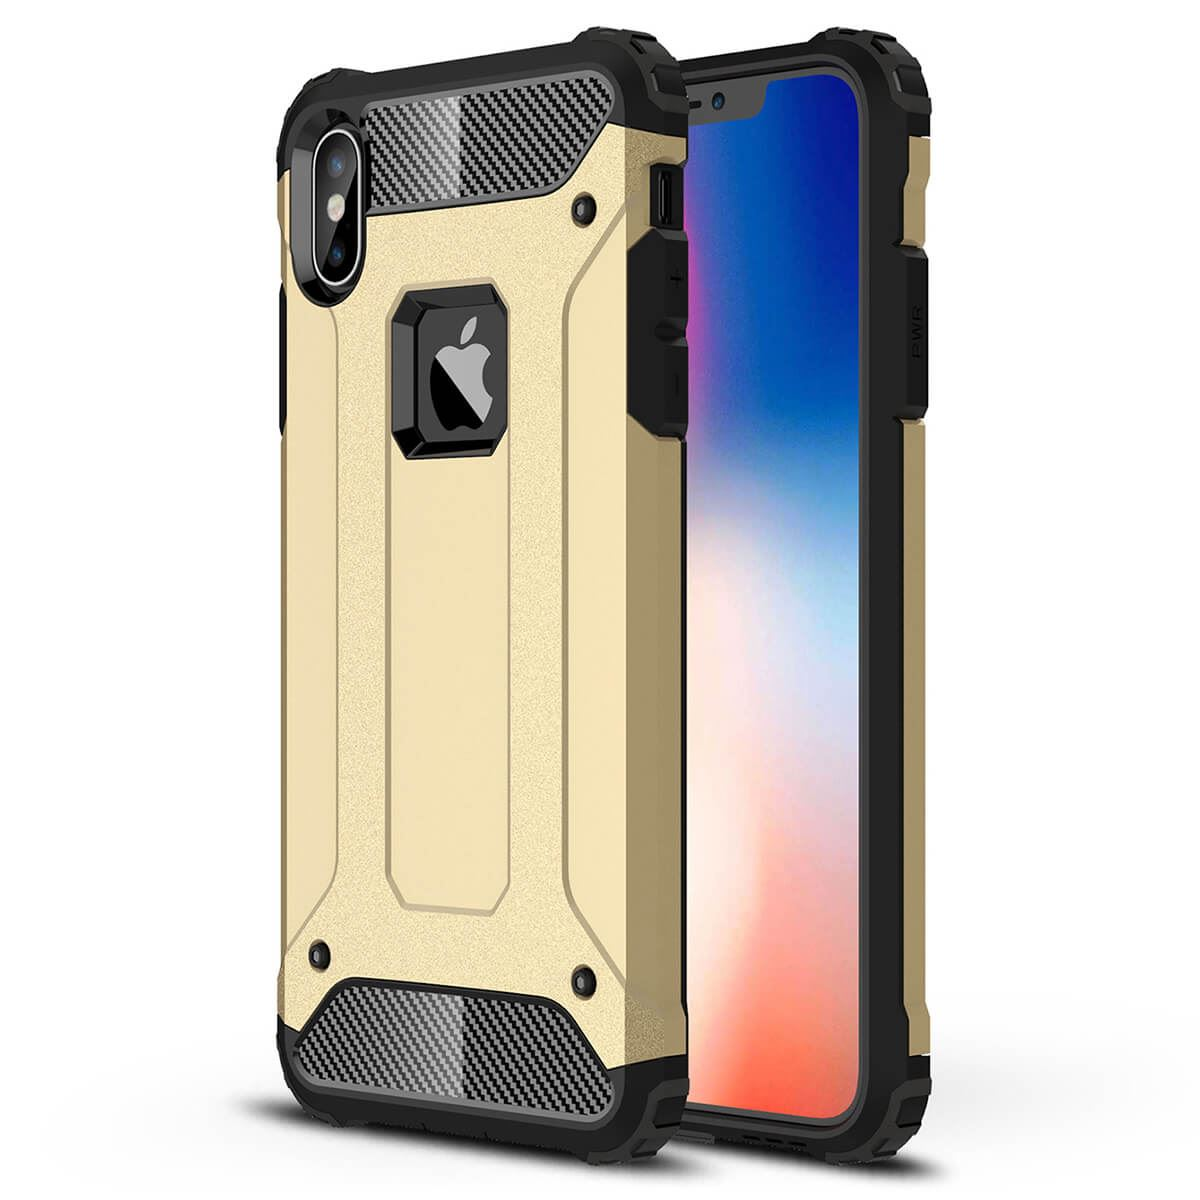 Shockproof-Bumper-Case-For-Apple-iPhone-10-X-8-7-Plus-6s-5s-Hybrid-Armor-Rugged thumbnail 10